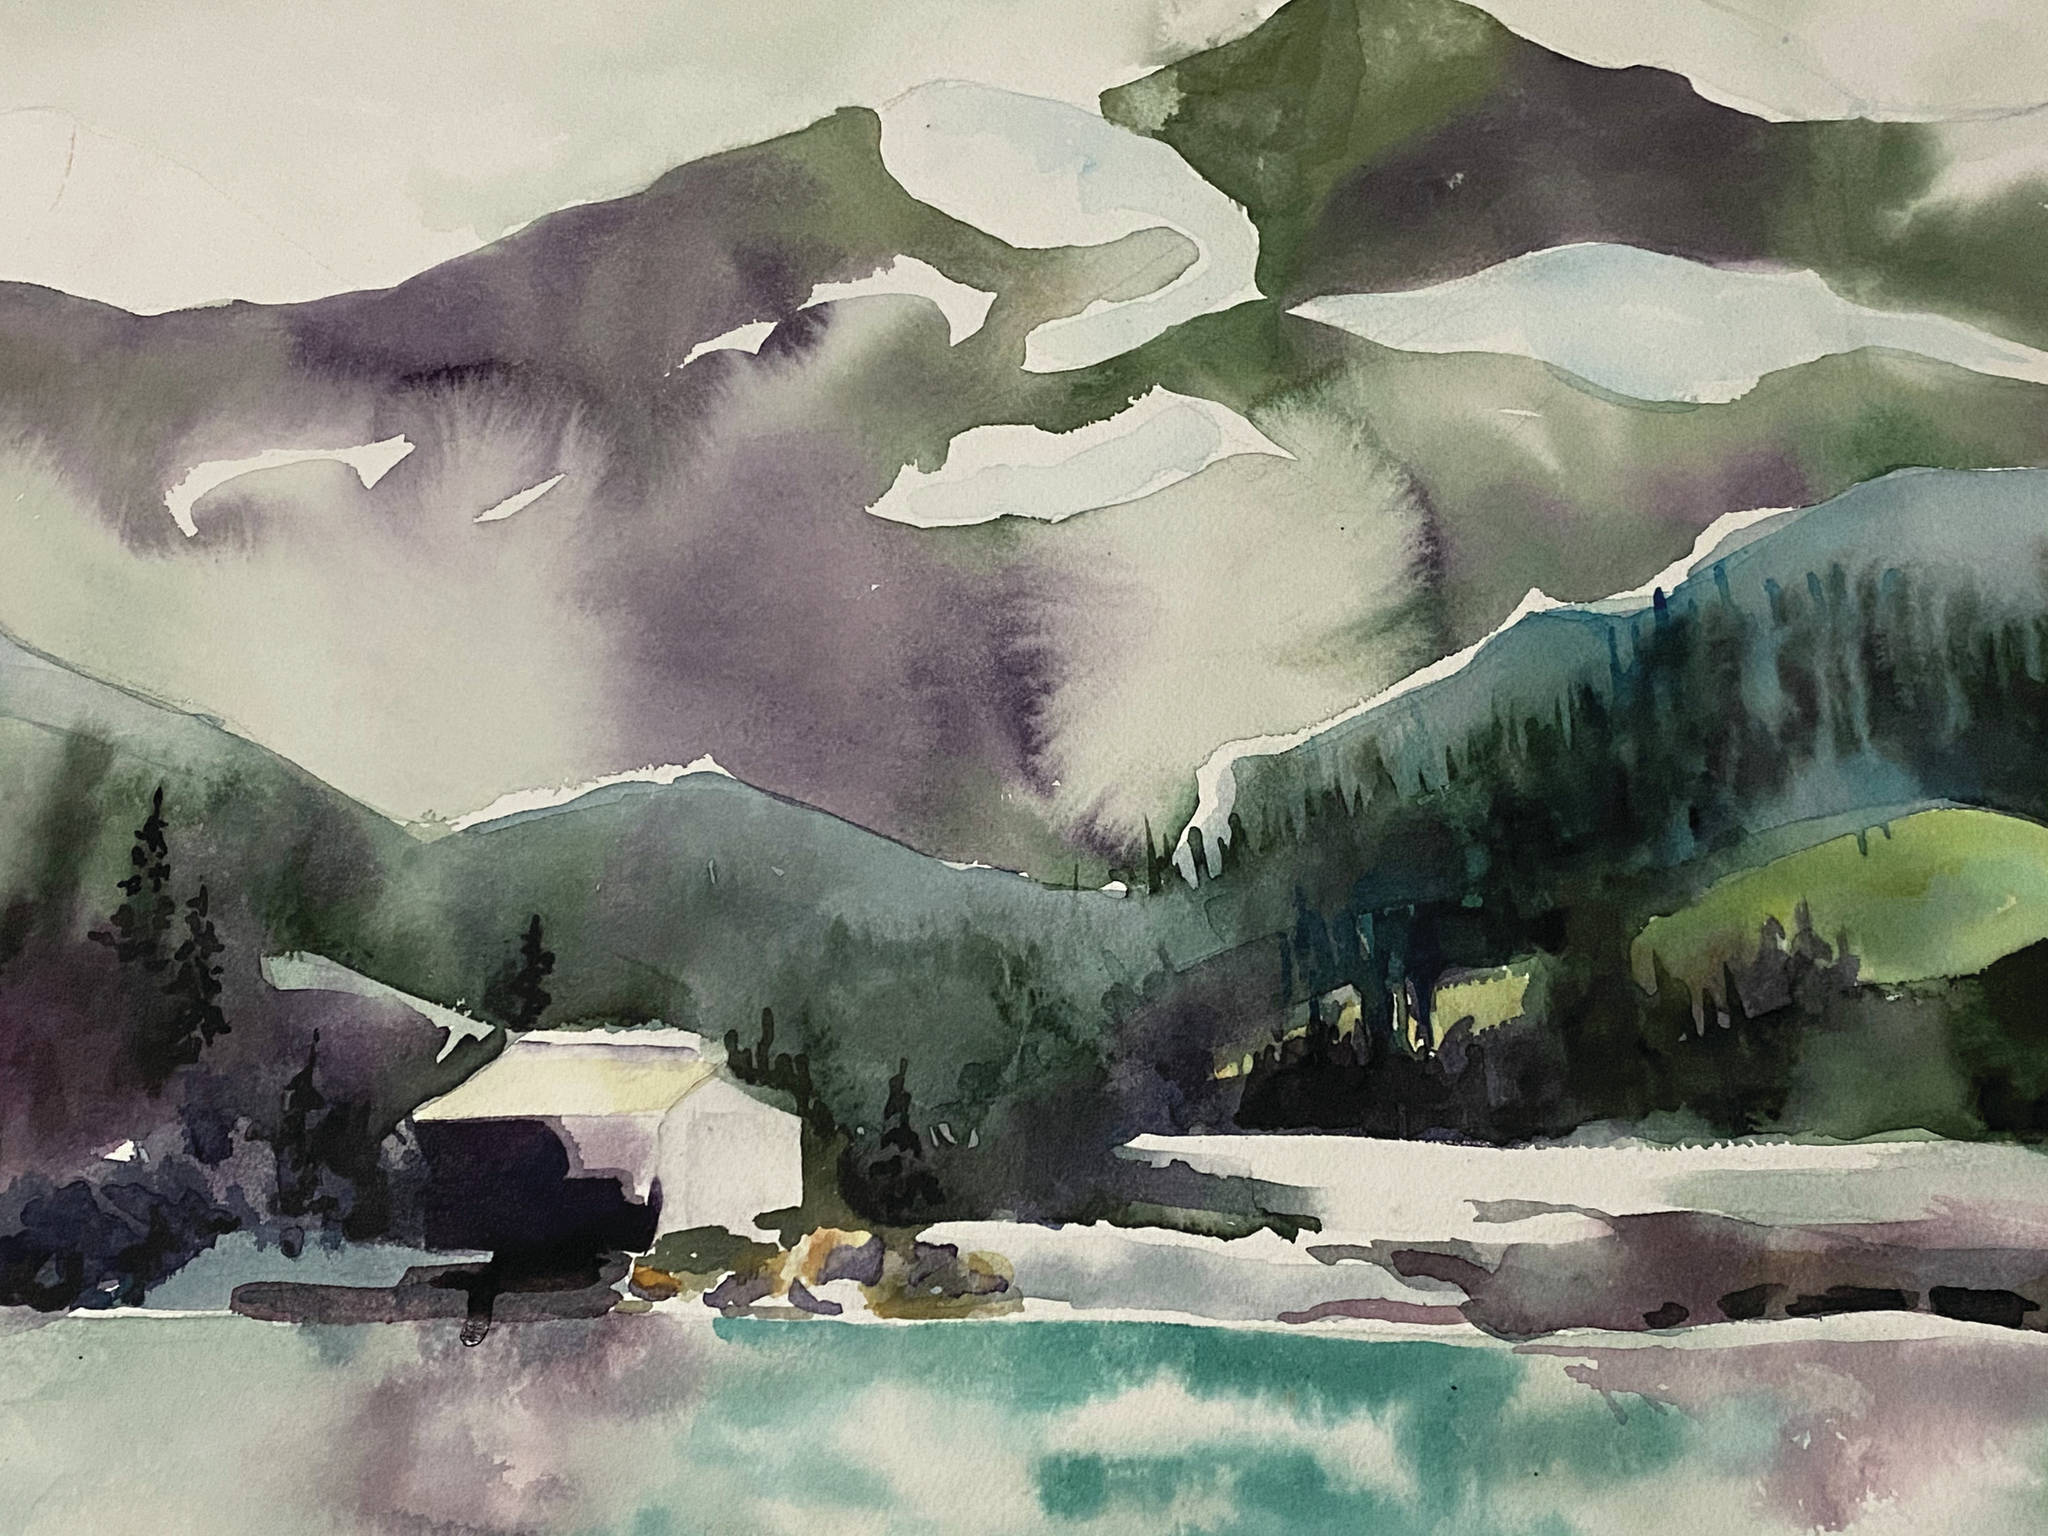 """""""Goober Lake, """" painting by Kimberly Cooper, is part of the members showcase exhibit opening Friday, Sept. 3, 2021, at the Homer Council on the Arts in Homer, Alaska. (Photo courtesy of Homer Council on the Arts)"""